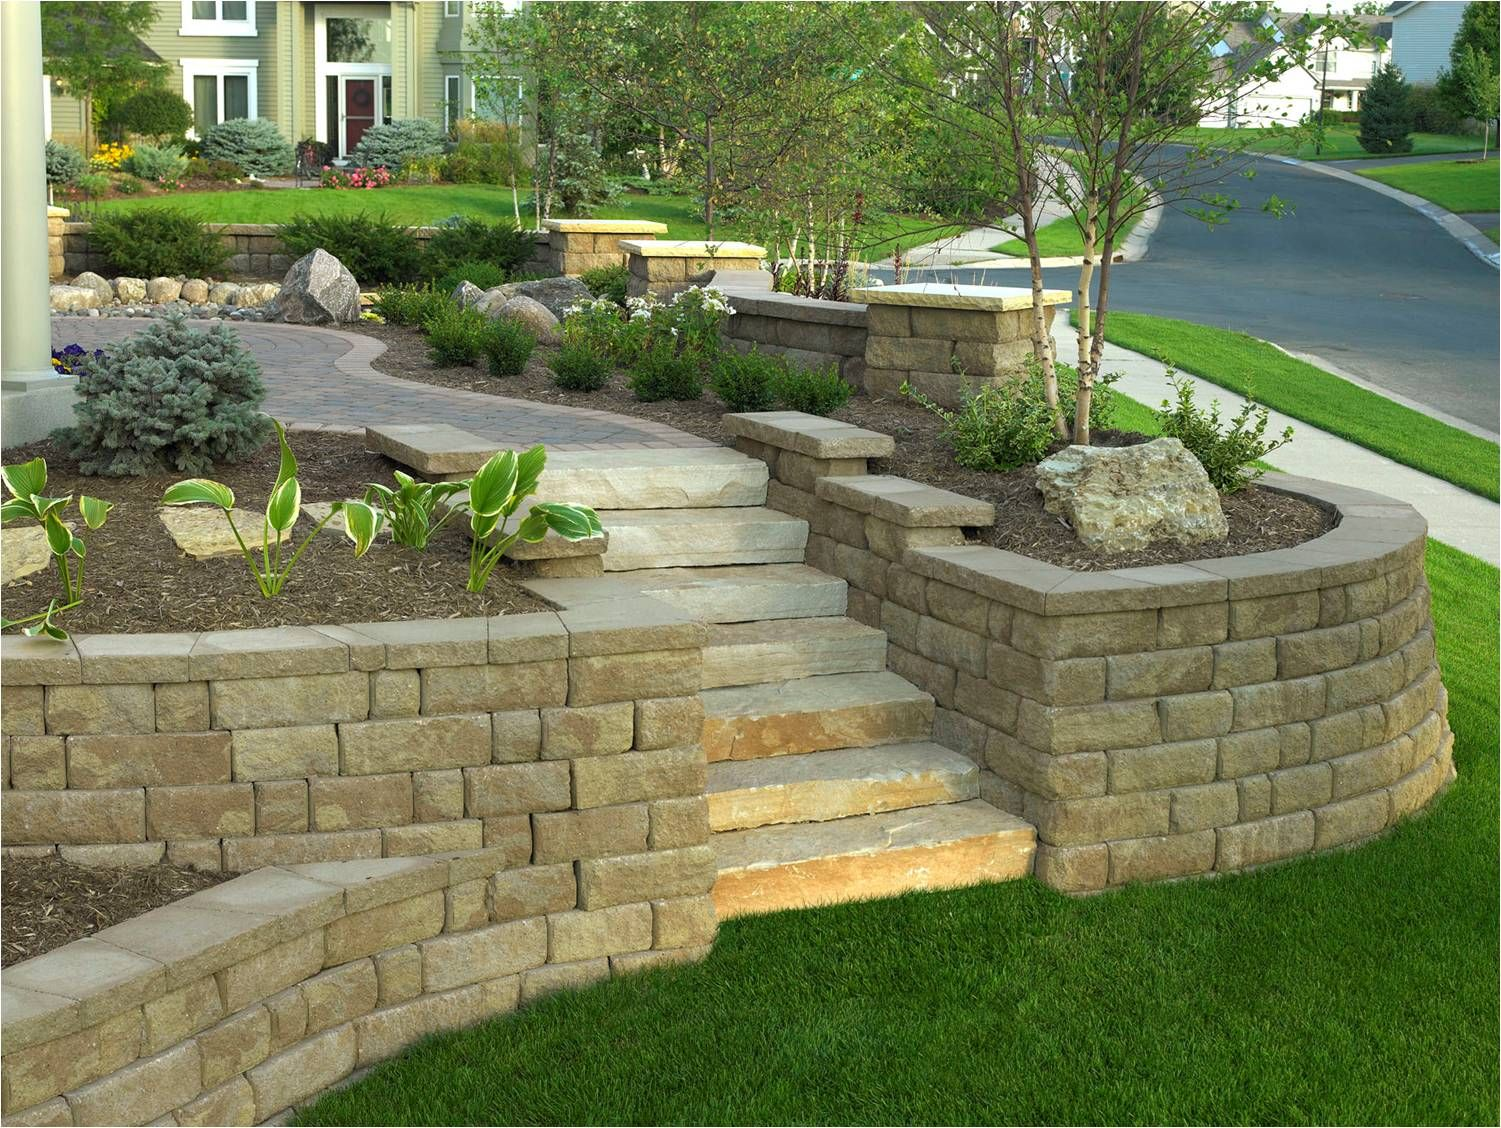 Retaining wall   west side of house   Landscaping retaining walls ...